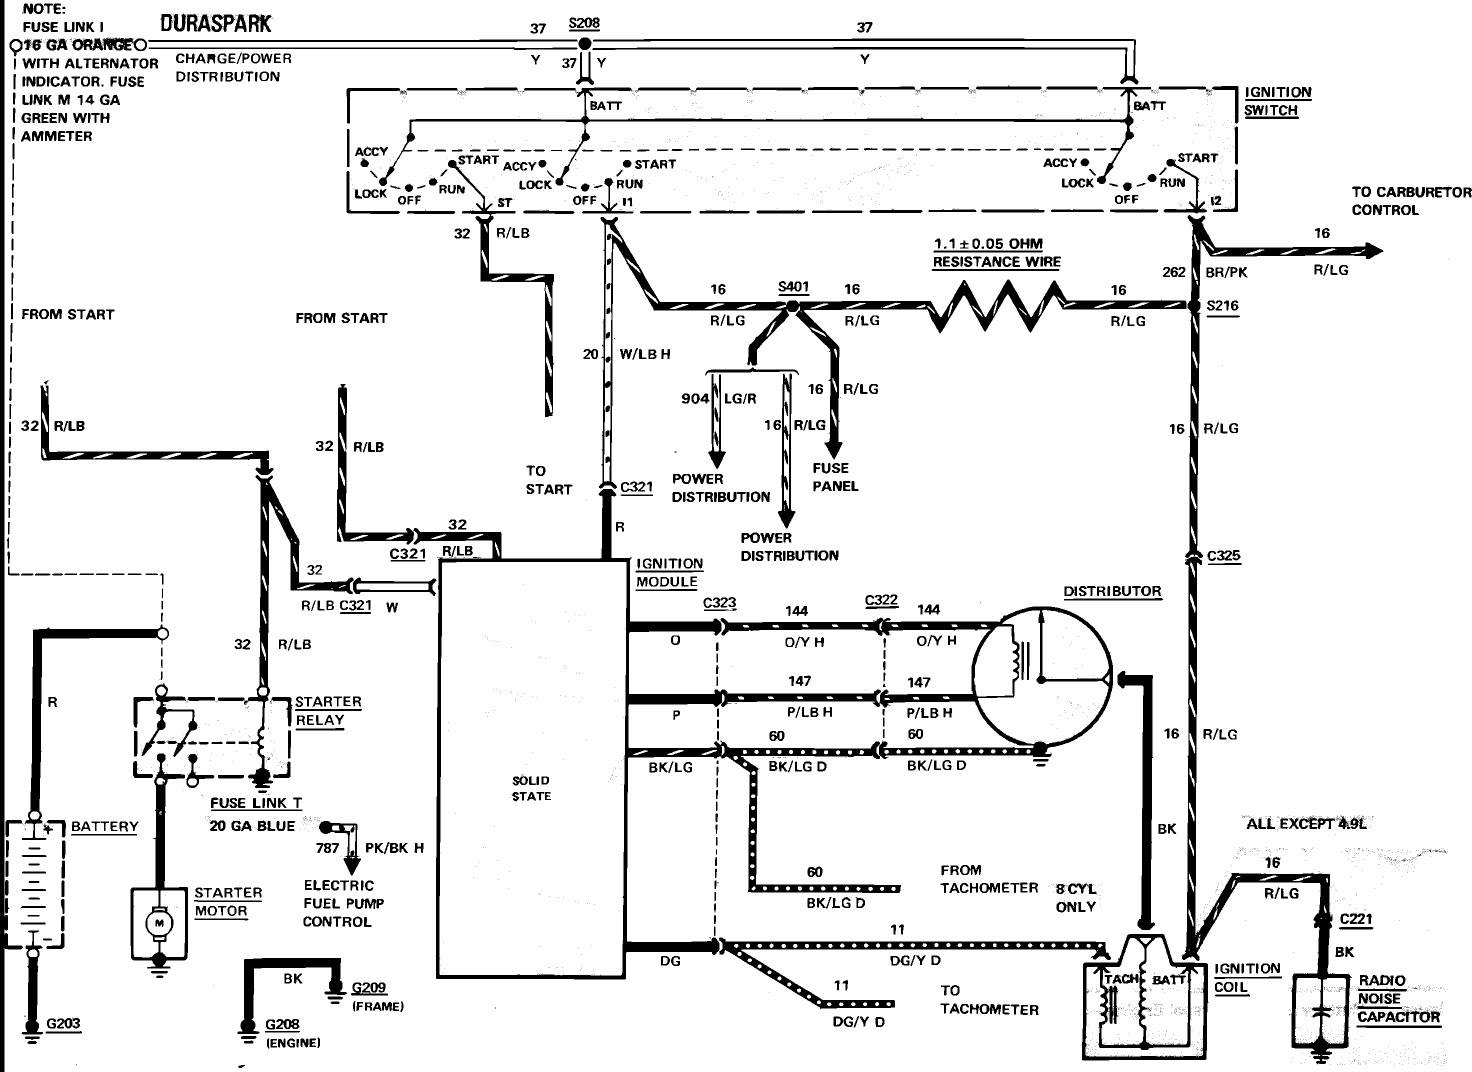 ford f250 wiring diagram online Collection-Ford F250 Wiring Diagram line 8-k